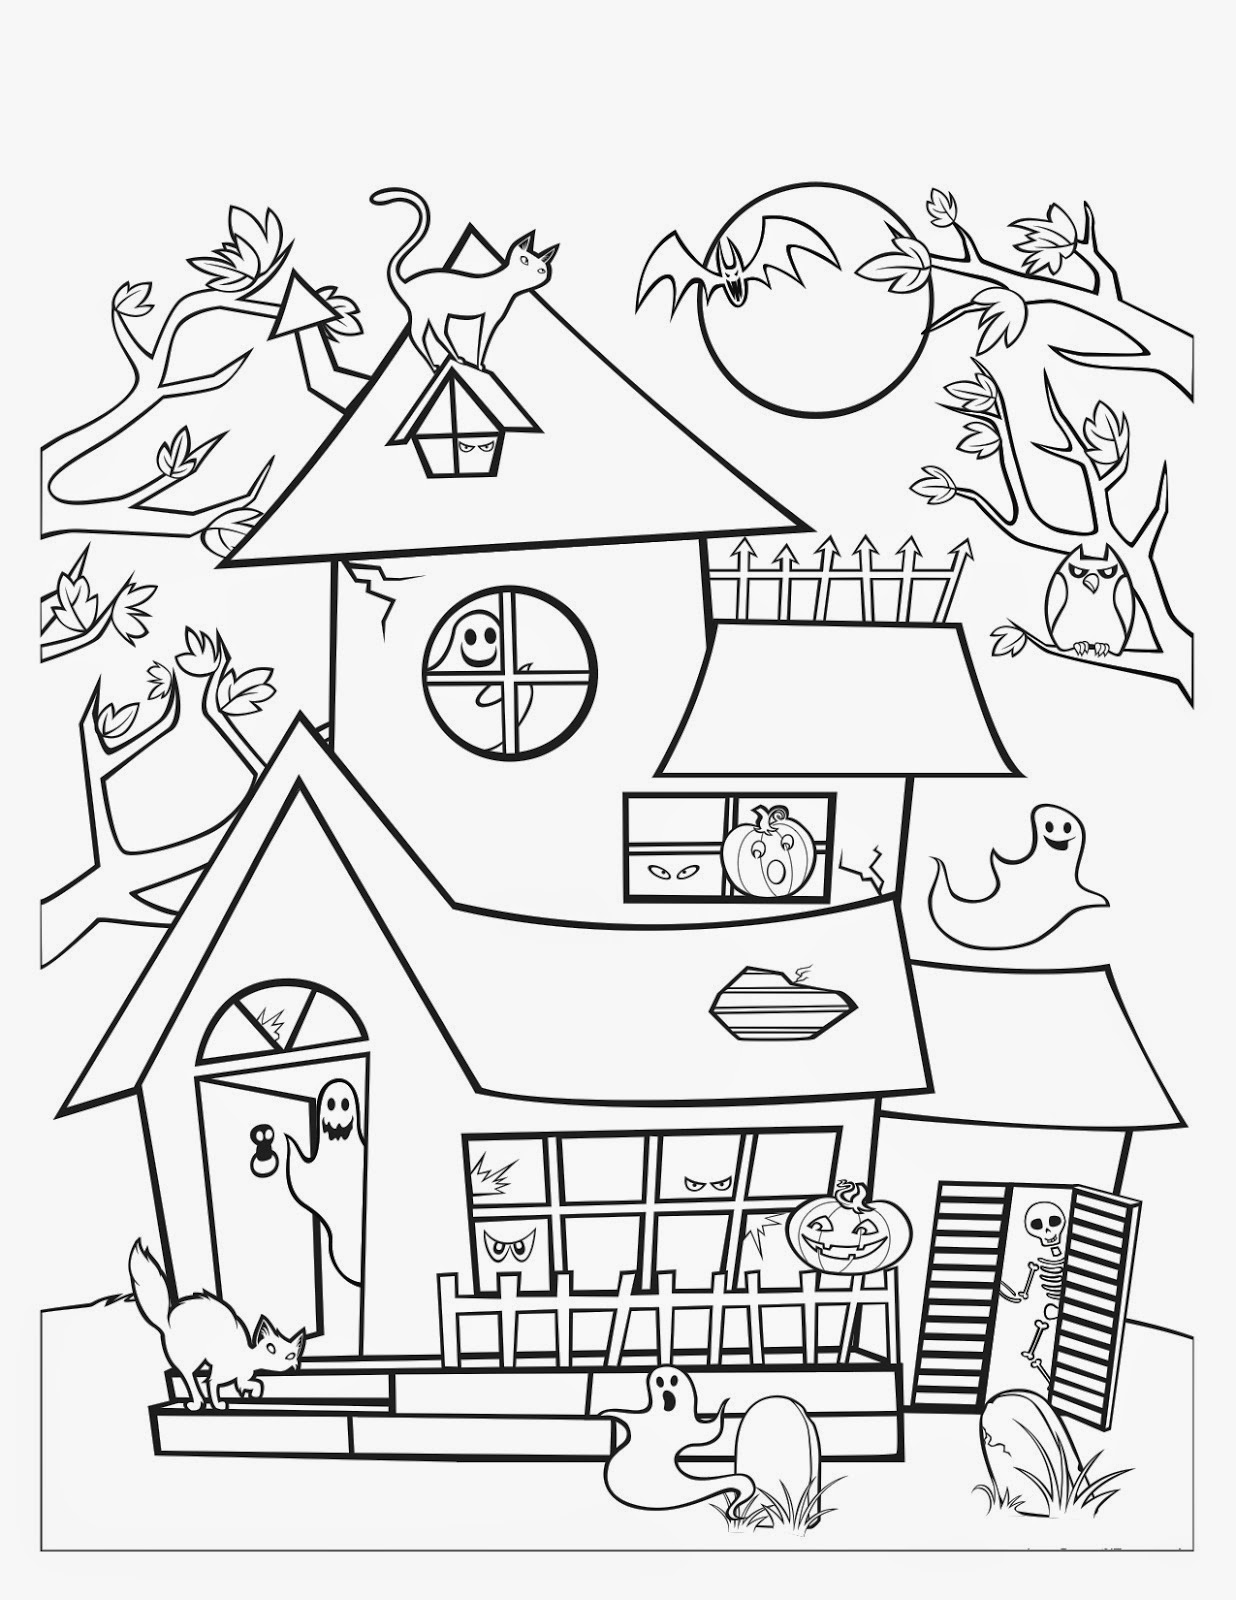 easy haunted house drawing at getdrawings com